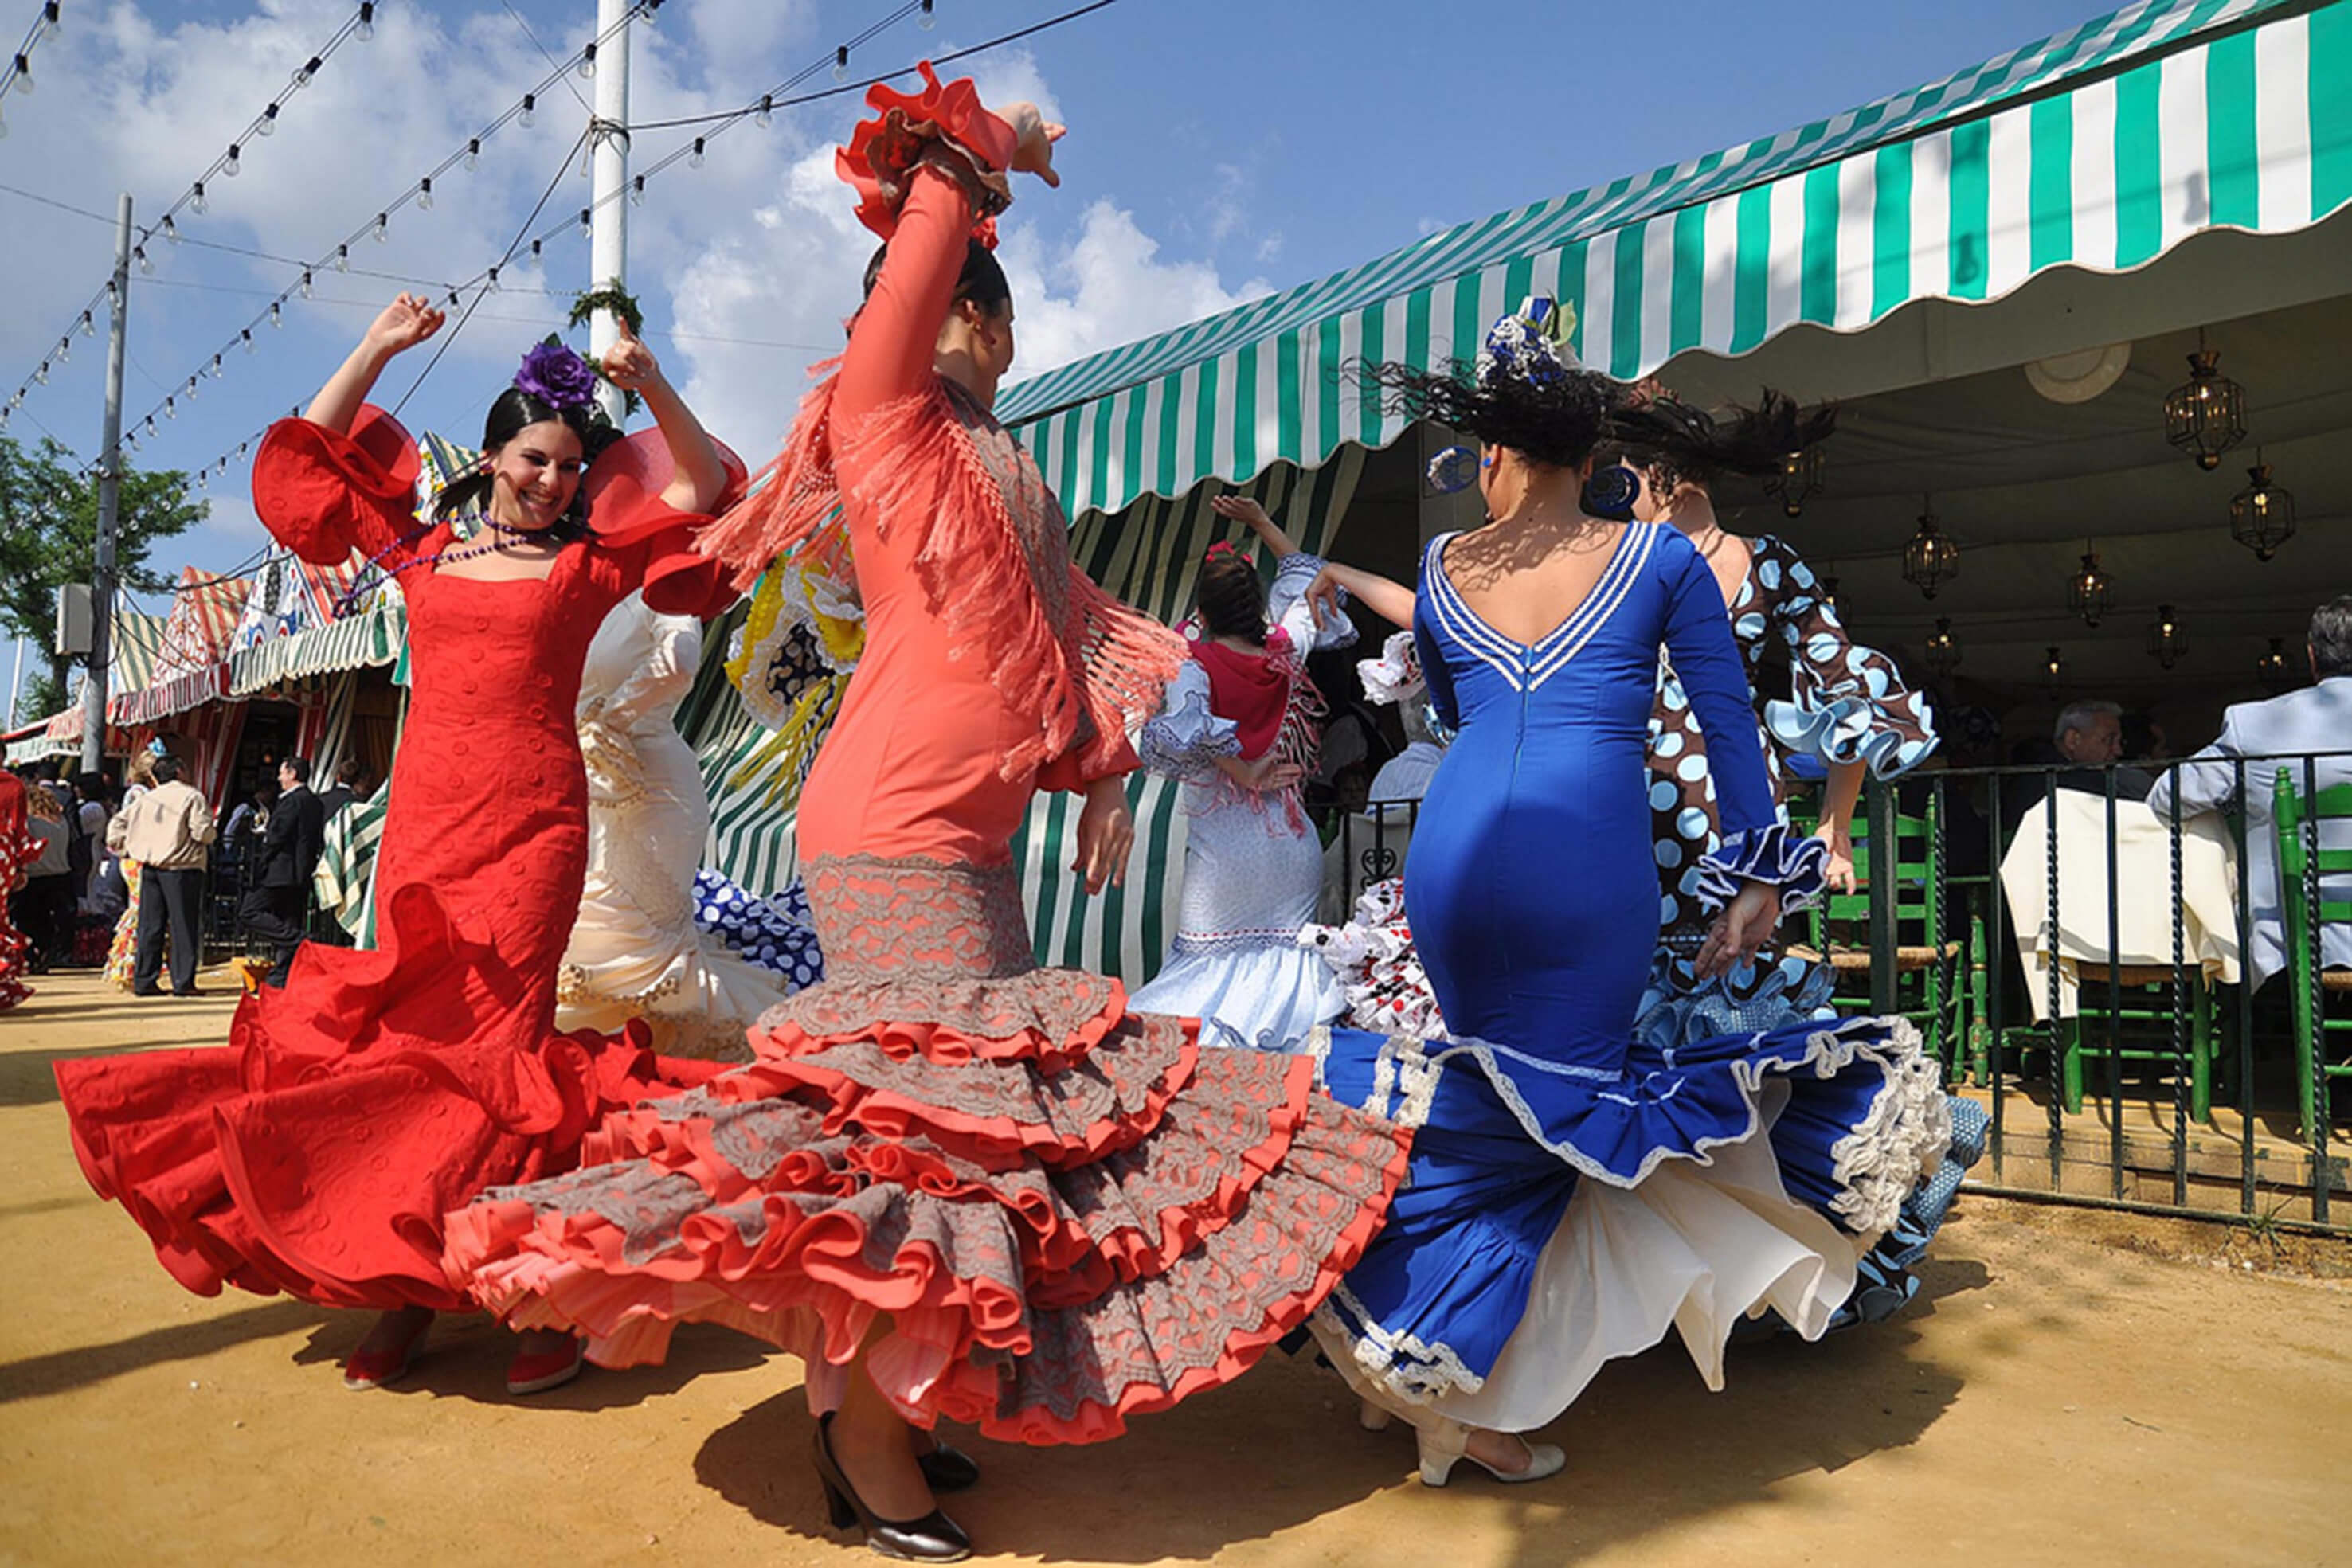 10 travel tips to know before visiting Spain - Feria de Abril